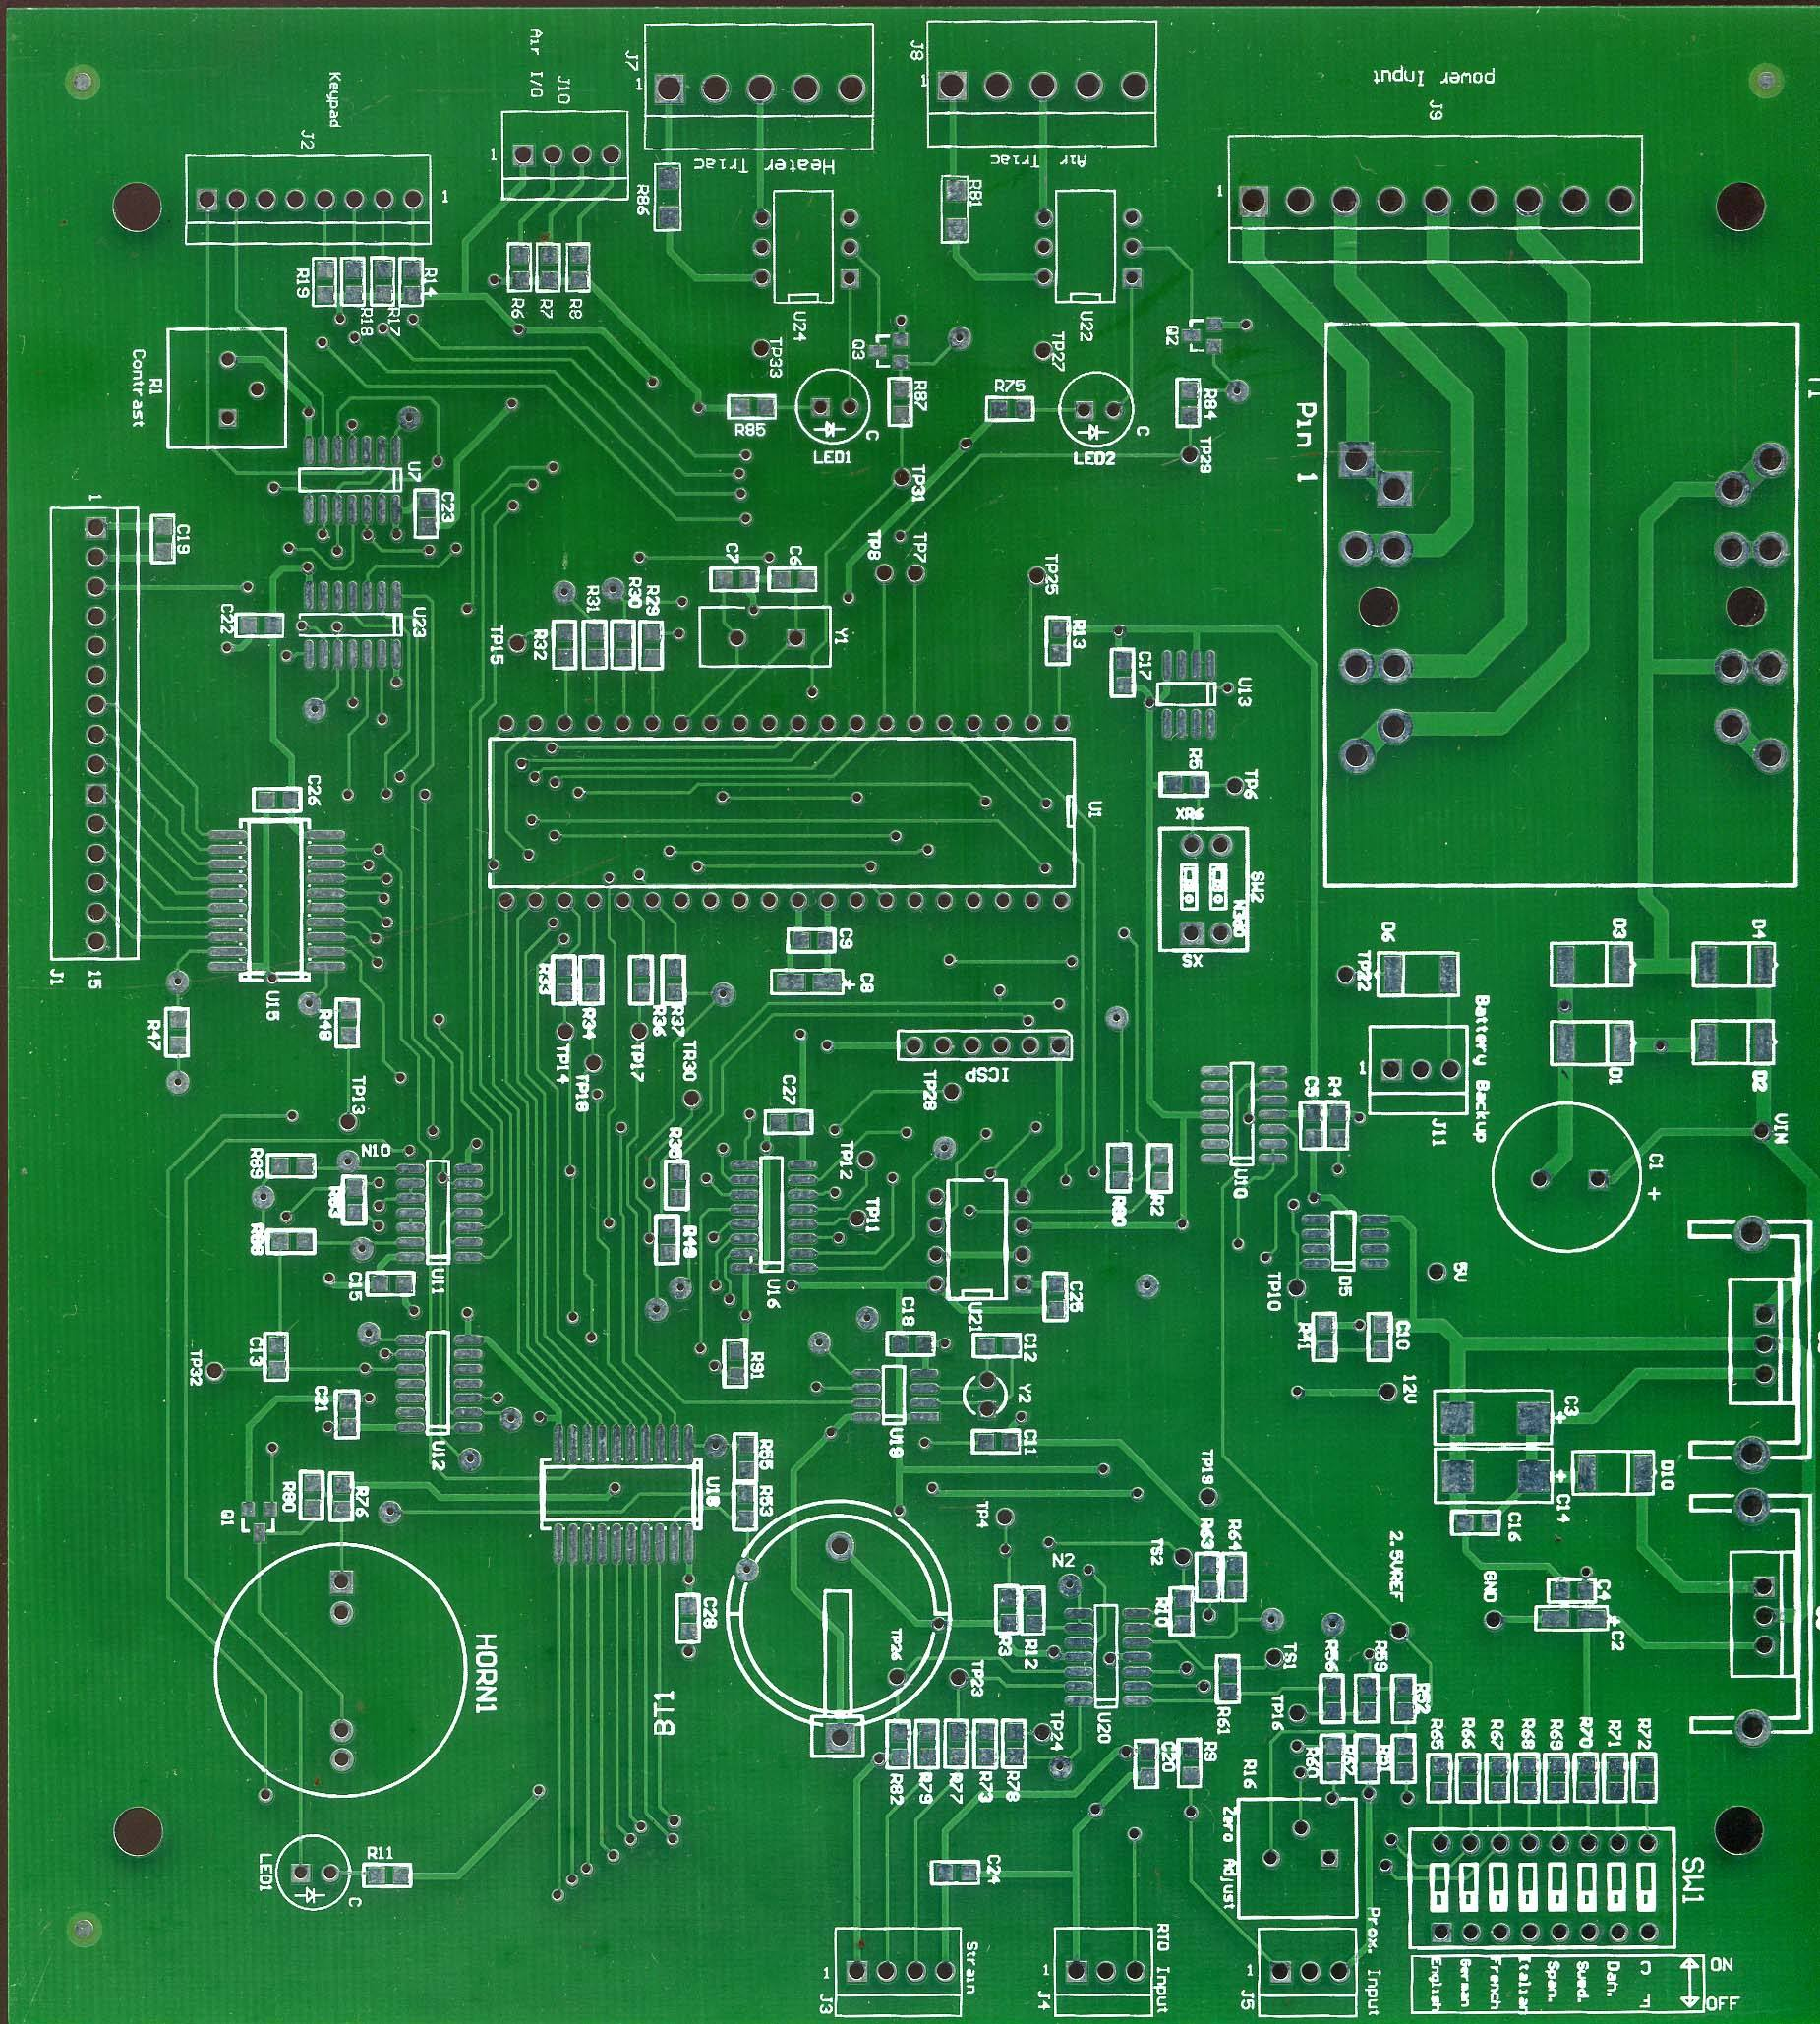 For Most Pcb Boards Are Green Andwin Circuits Printed Wiring Viewpoint 2 Common Red Yellow Blue And Black Due To The Problem Of Process Many Lines Inspection Still Rely On Workers See With